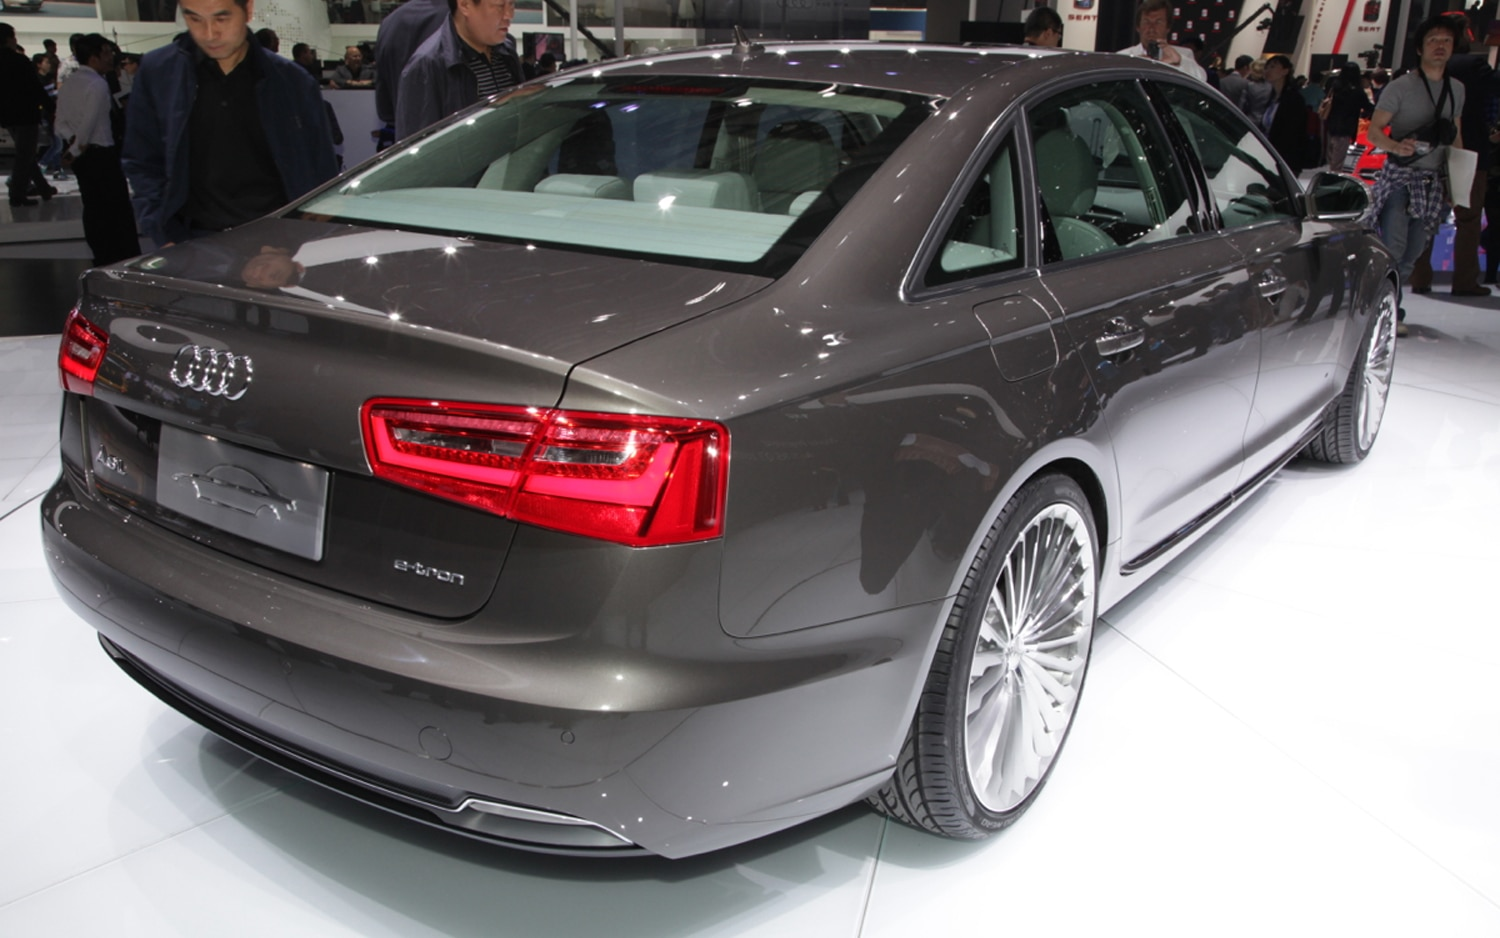 beijing 2012 audi unvelis a6 l e tron concept plug in hybrid. Black Bedroom Furniture Sets. Home Design Ideas